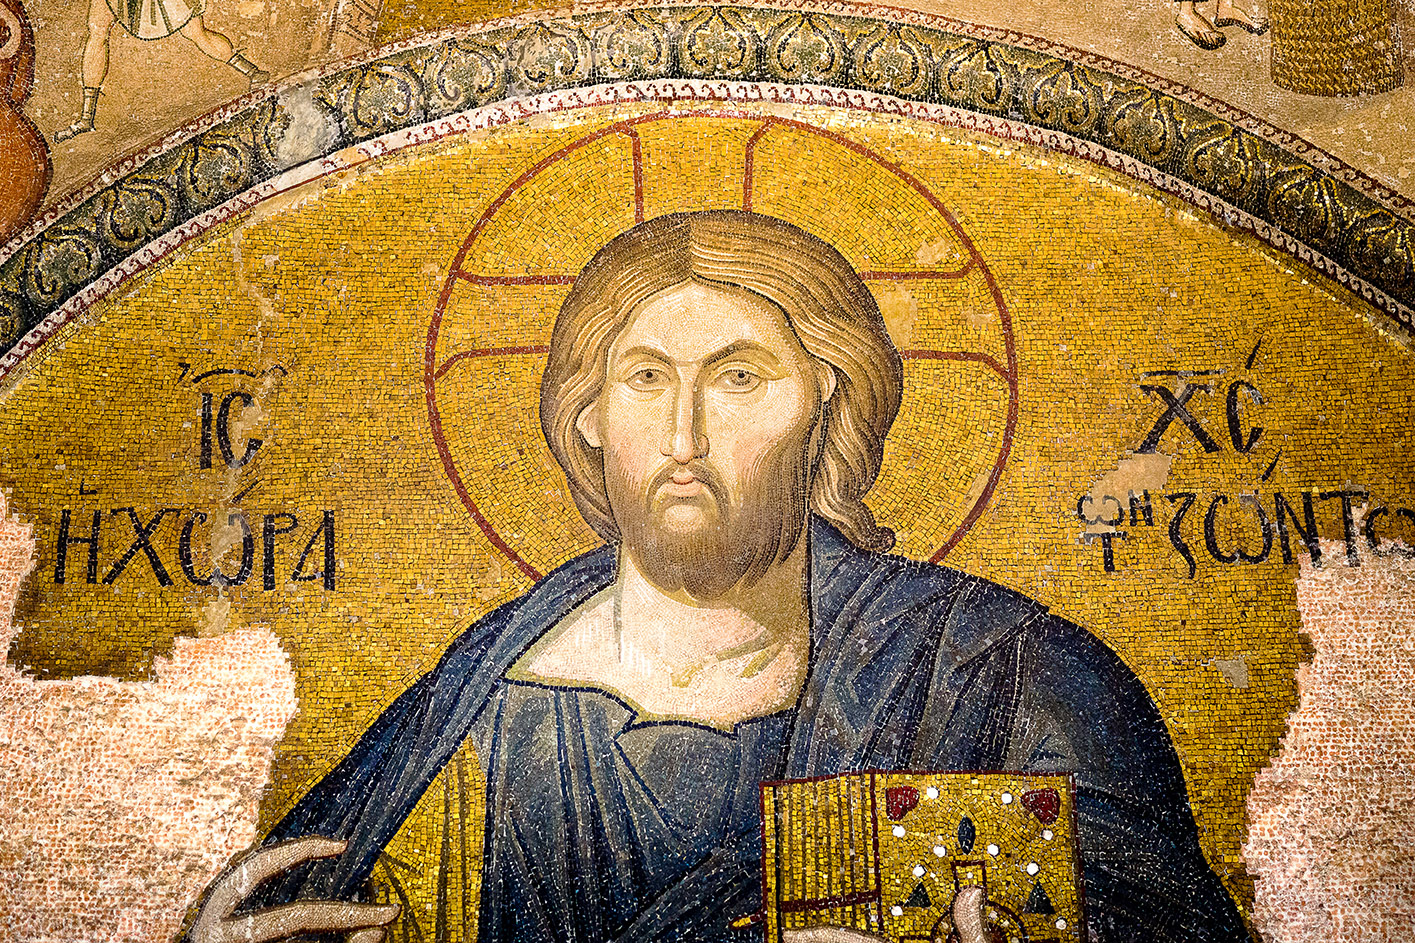 Christ pantocrator. Mosaic in Cora Church